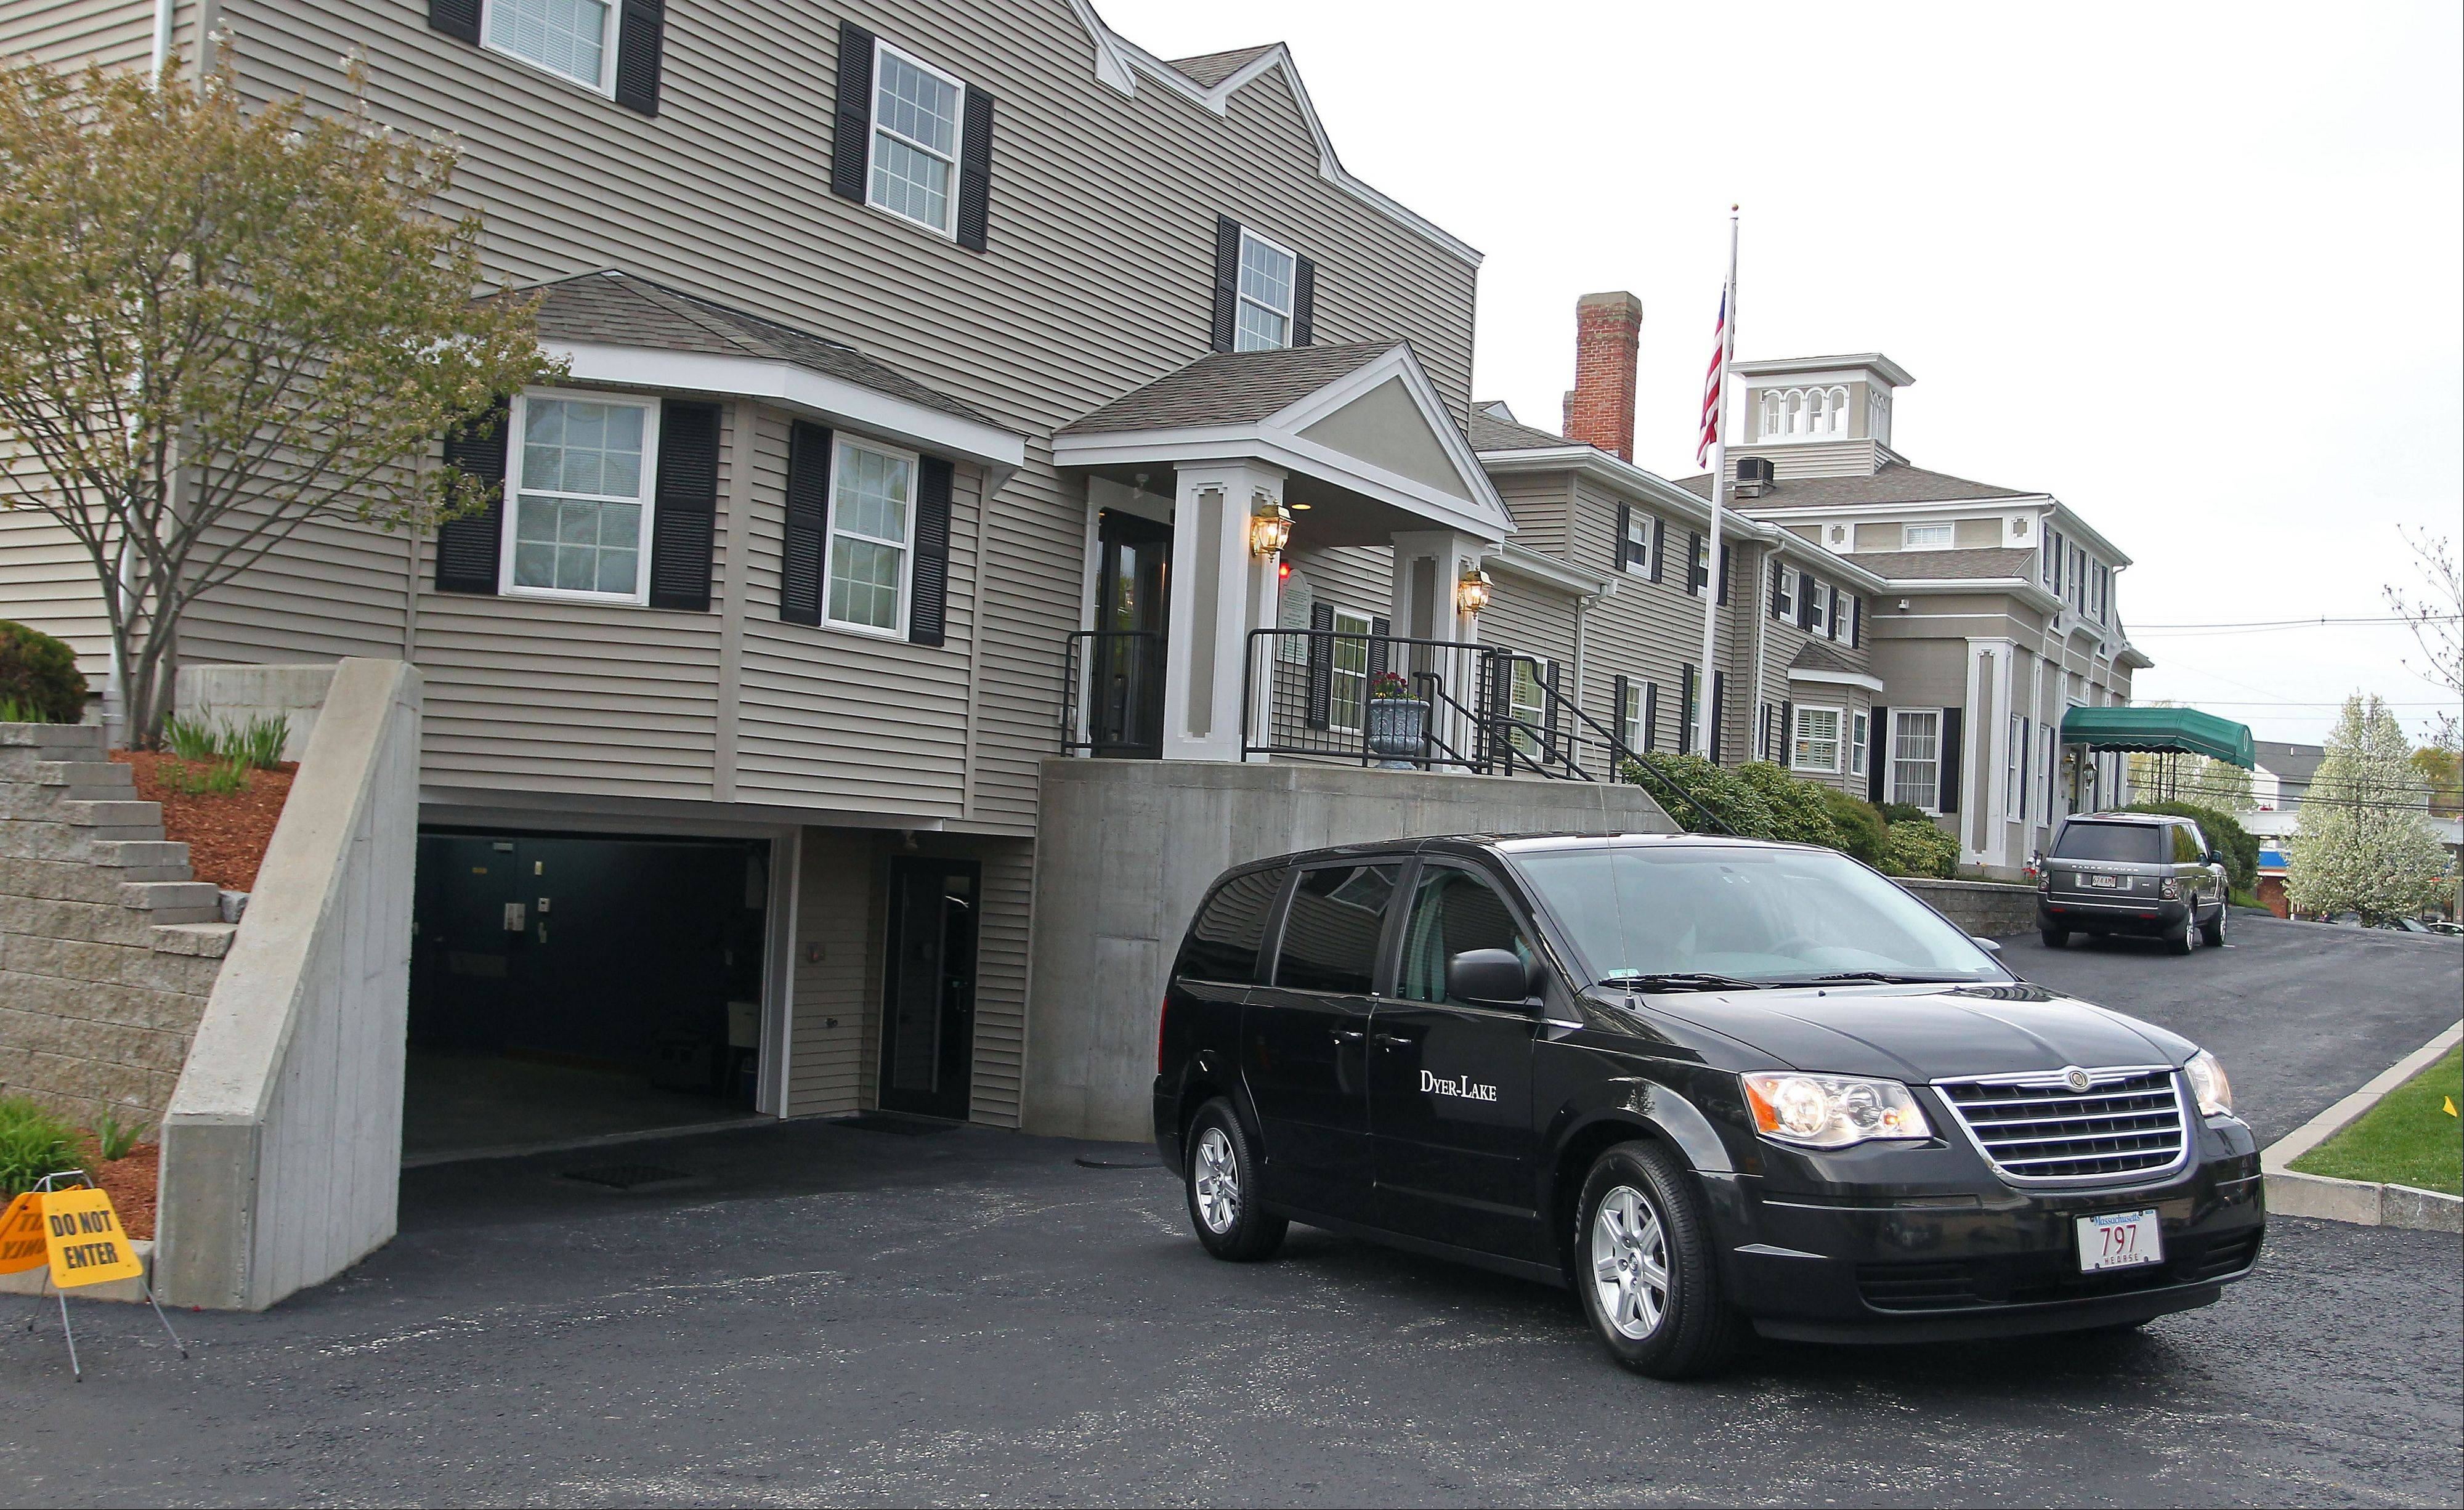 A vehicle believed to be carrying the body of Boston Marathon bombing suspect Tamerlan Tsarnaev backs into an underground garage at a funeral home Thursday in North Attleborough, Mass. The body of Tsarnaev, who was the subject of a massive manhunt and died after a gunbattle with police, was claimed Thursday.